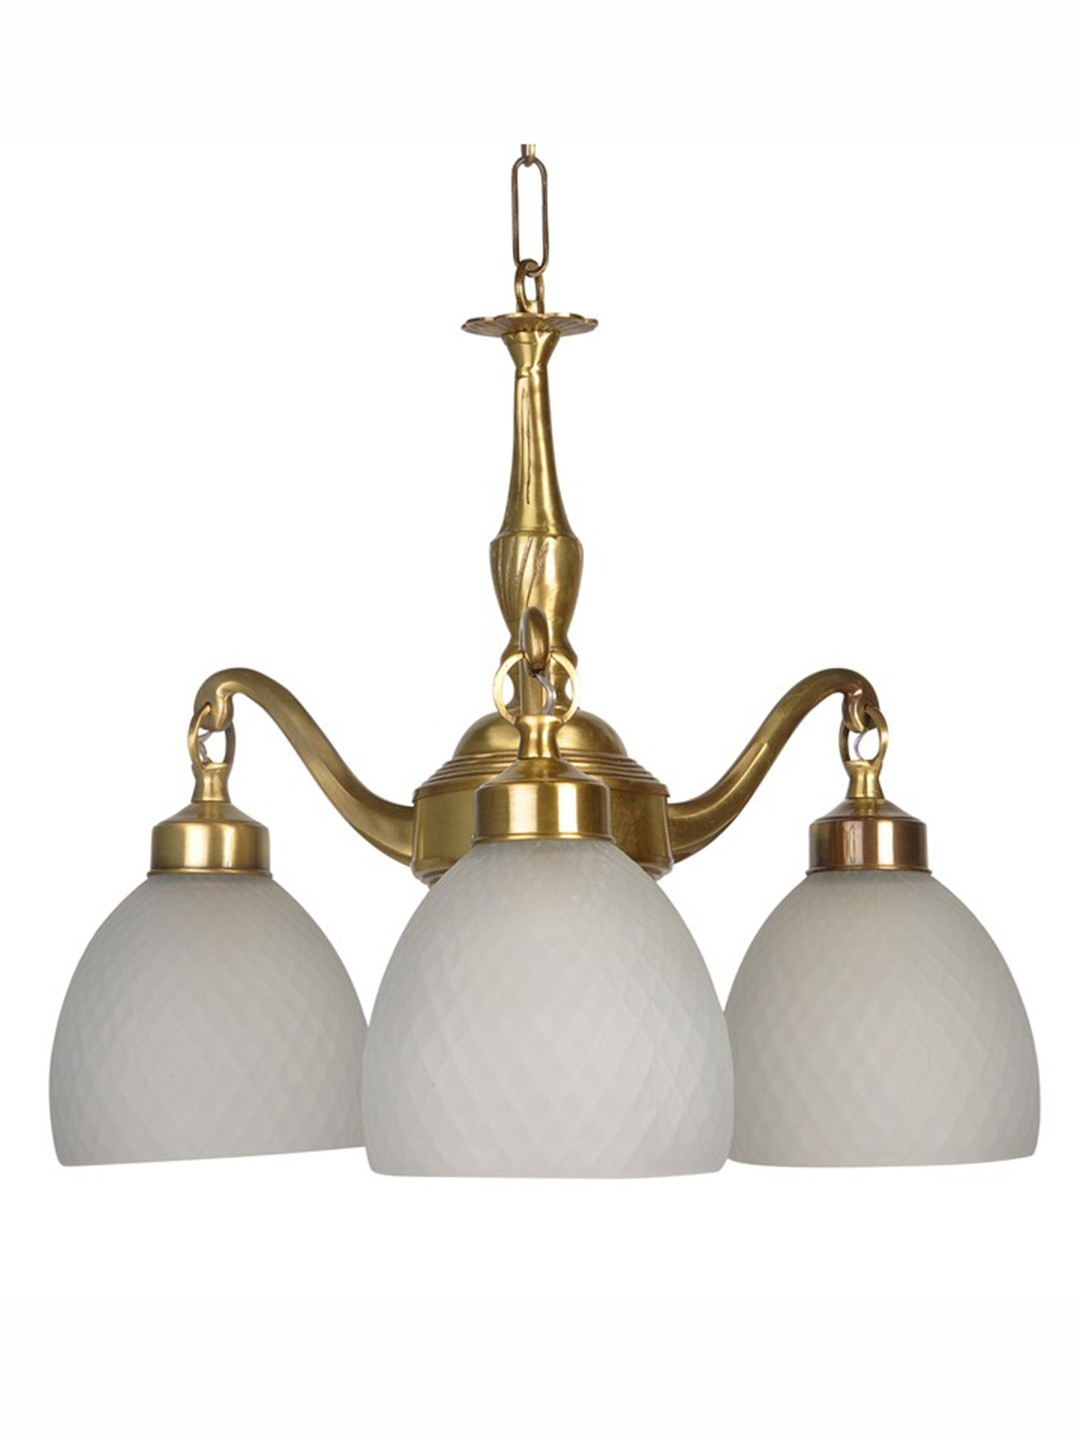 Brass Casted Downward Chandelier